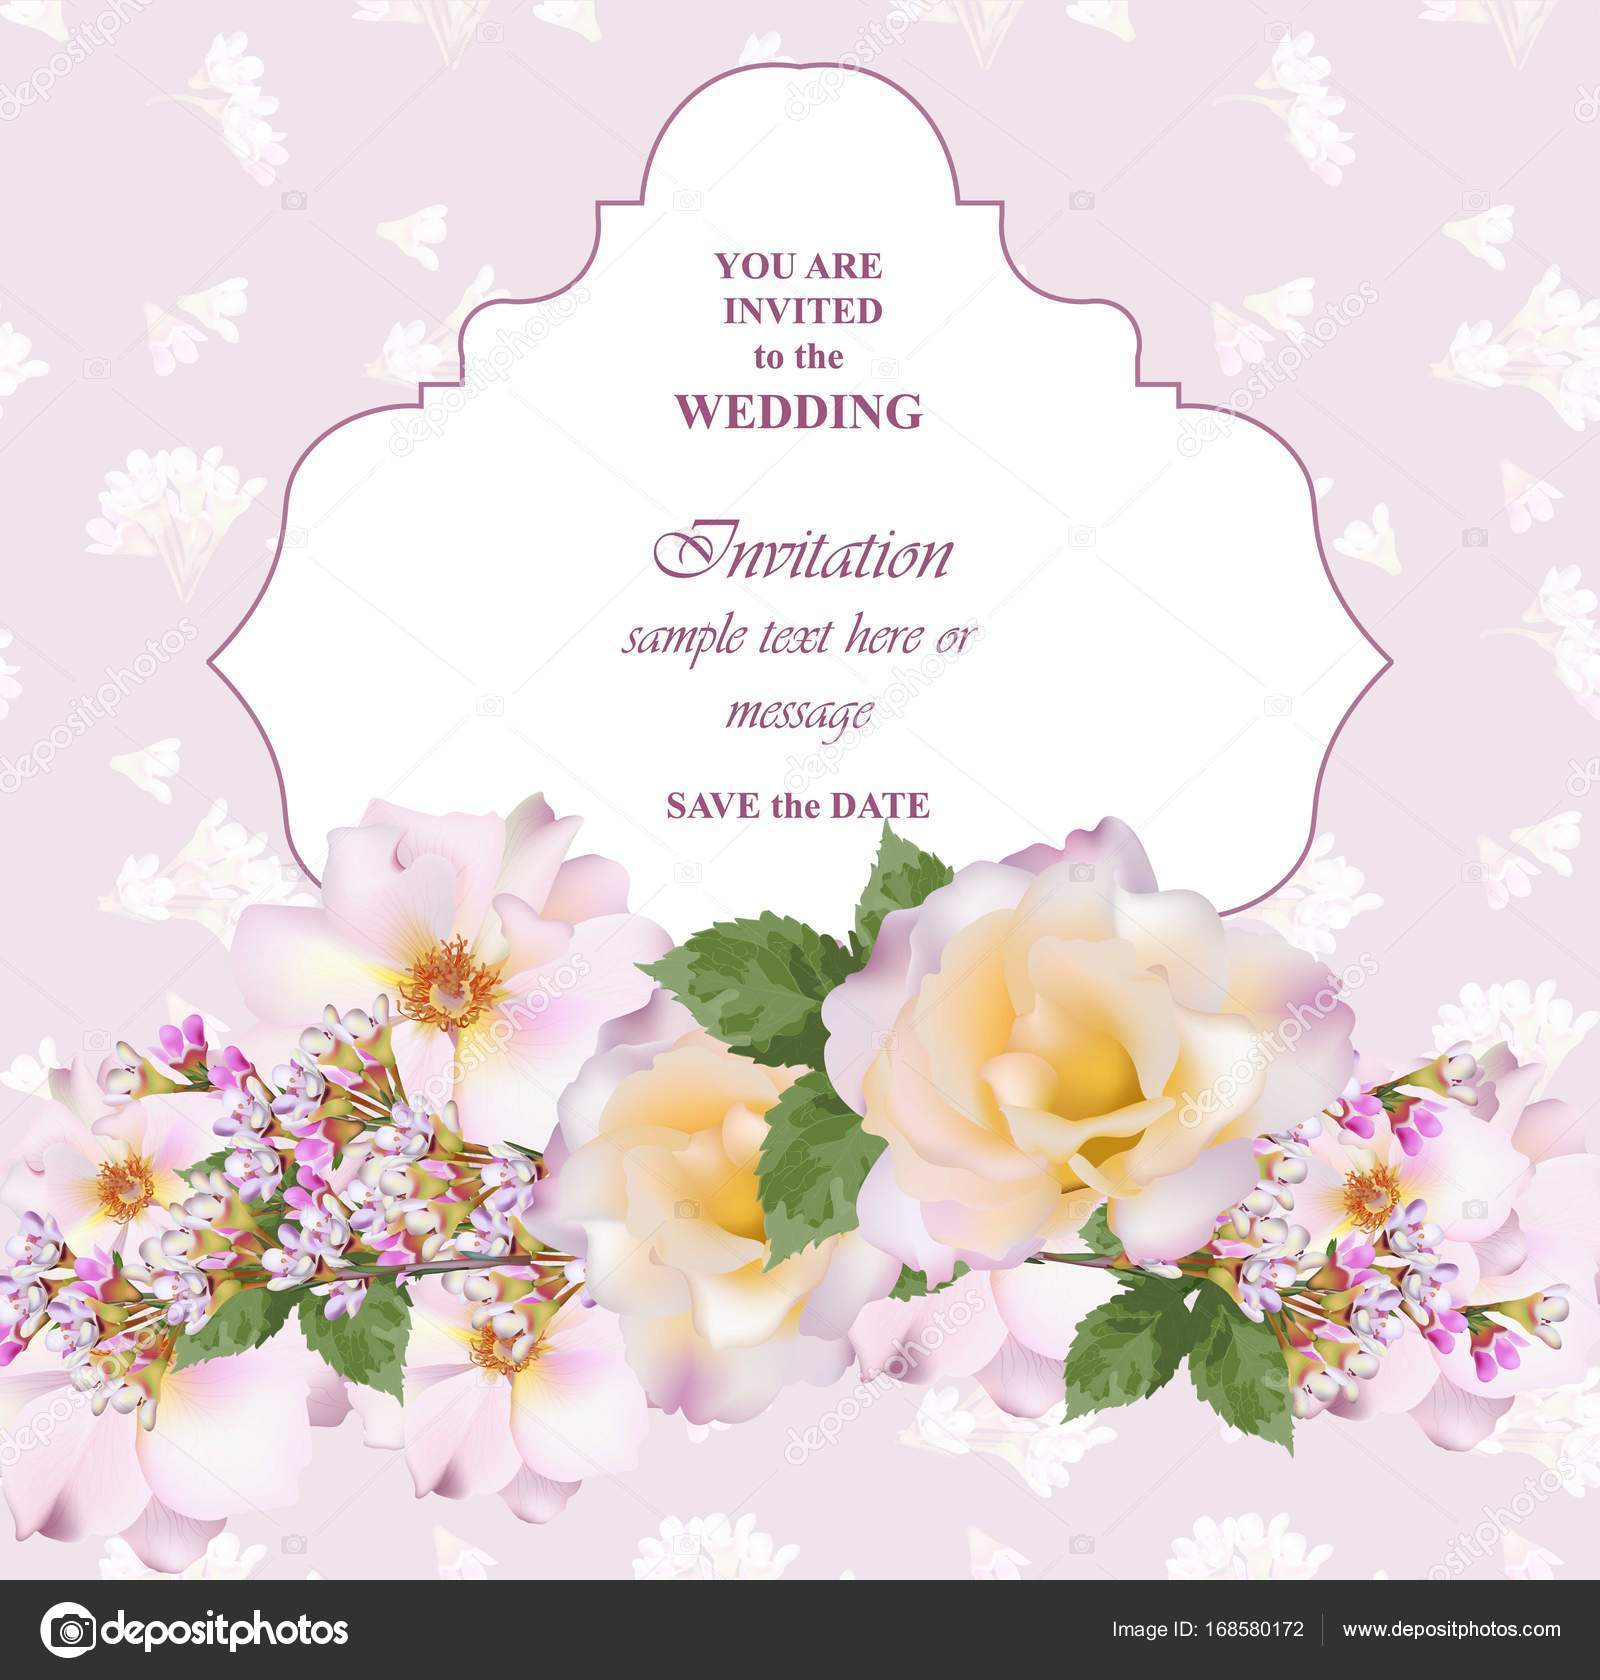 Wedding invitation card vector delicate rose and lavender flowers wedding invitation card vector delicate rose and lavender flowers primrose pink colors stock stopboris Choice Image